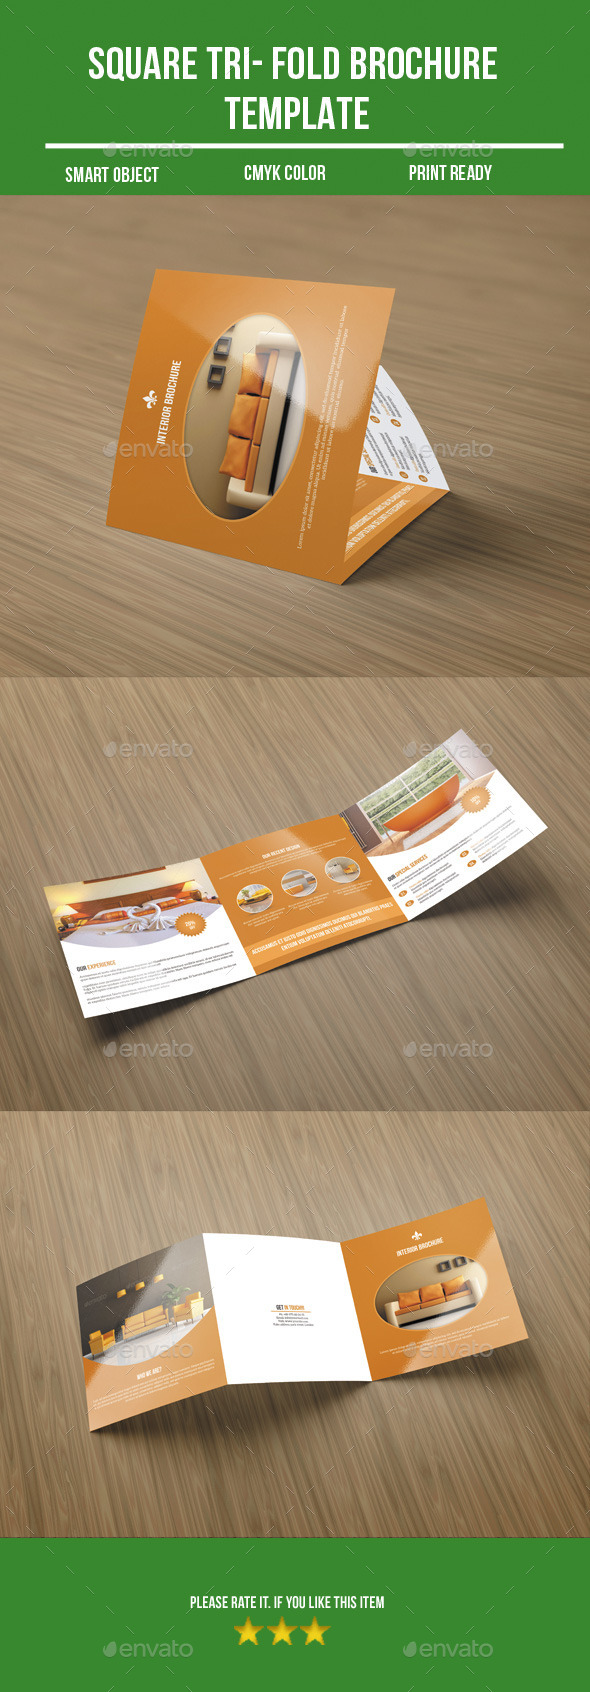 Square Tri-Fold Interior Brochure - Corporate Brochures